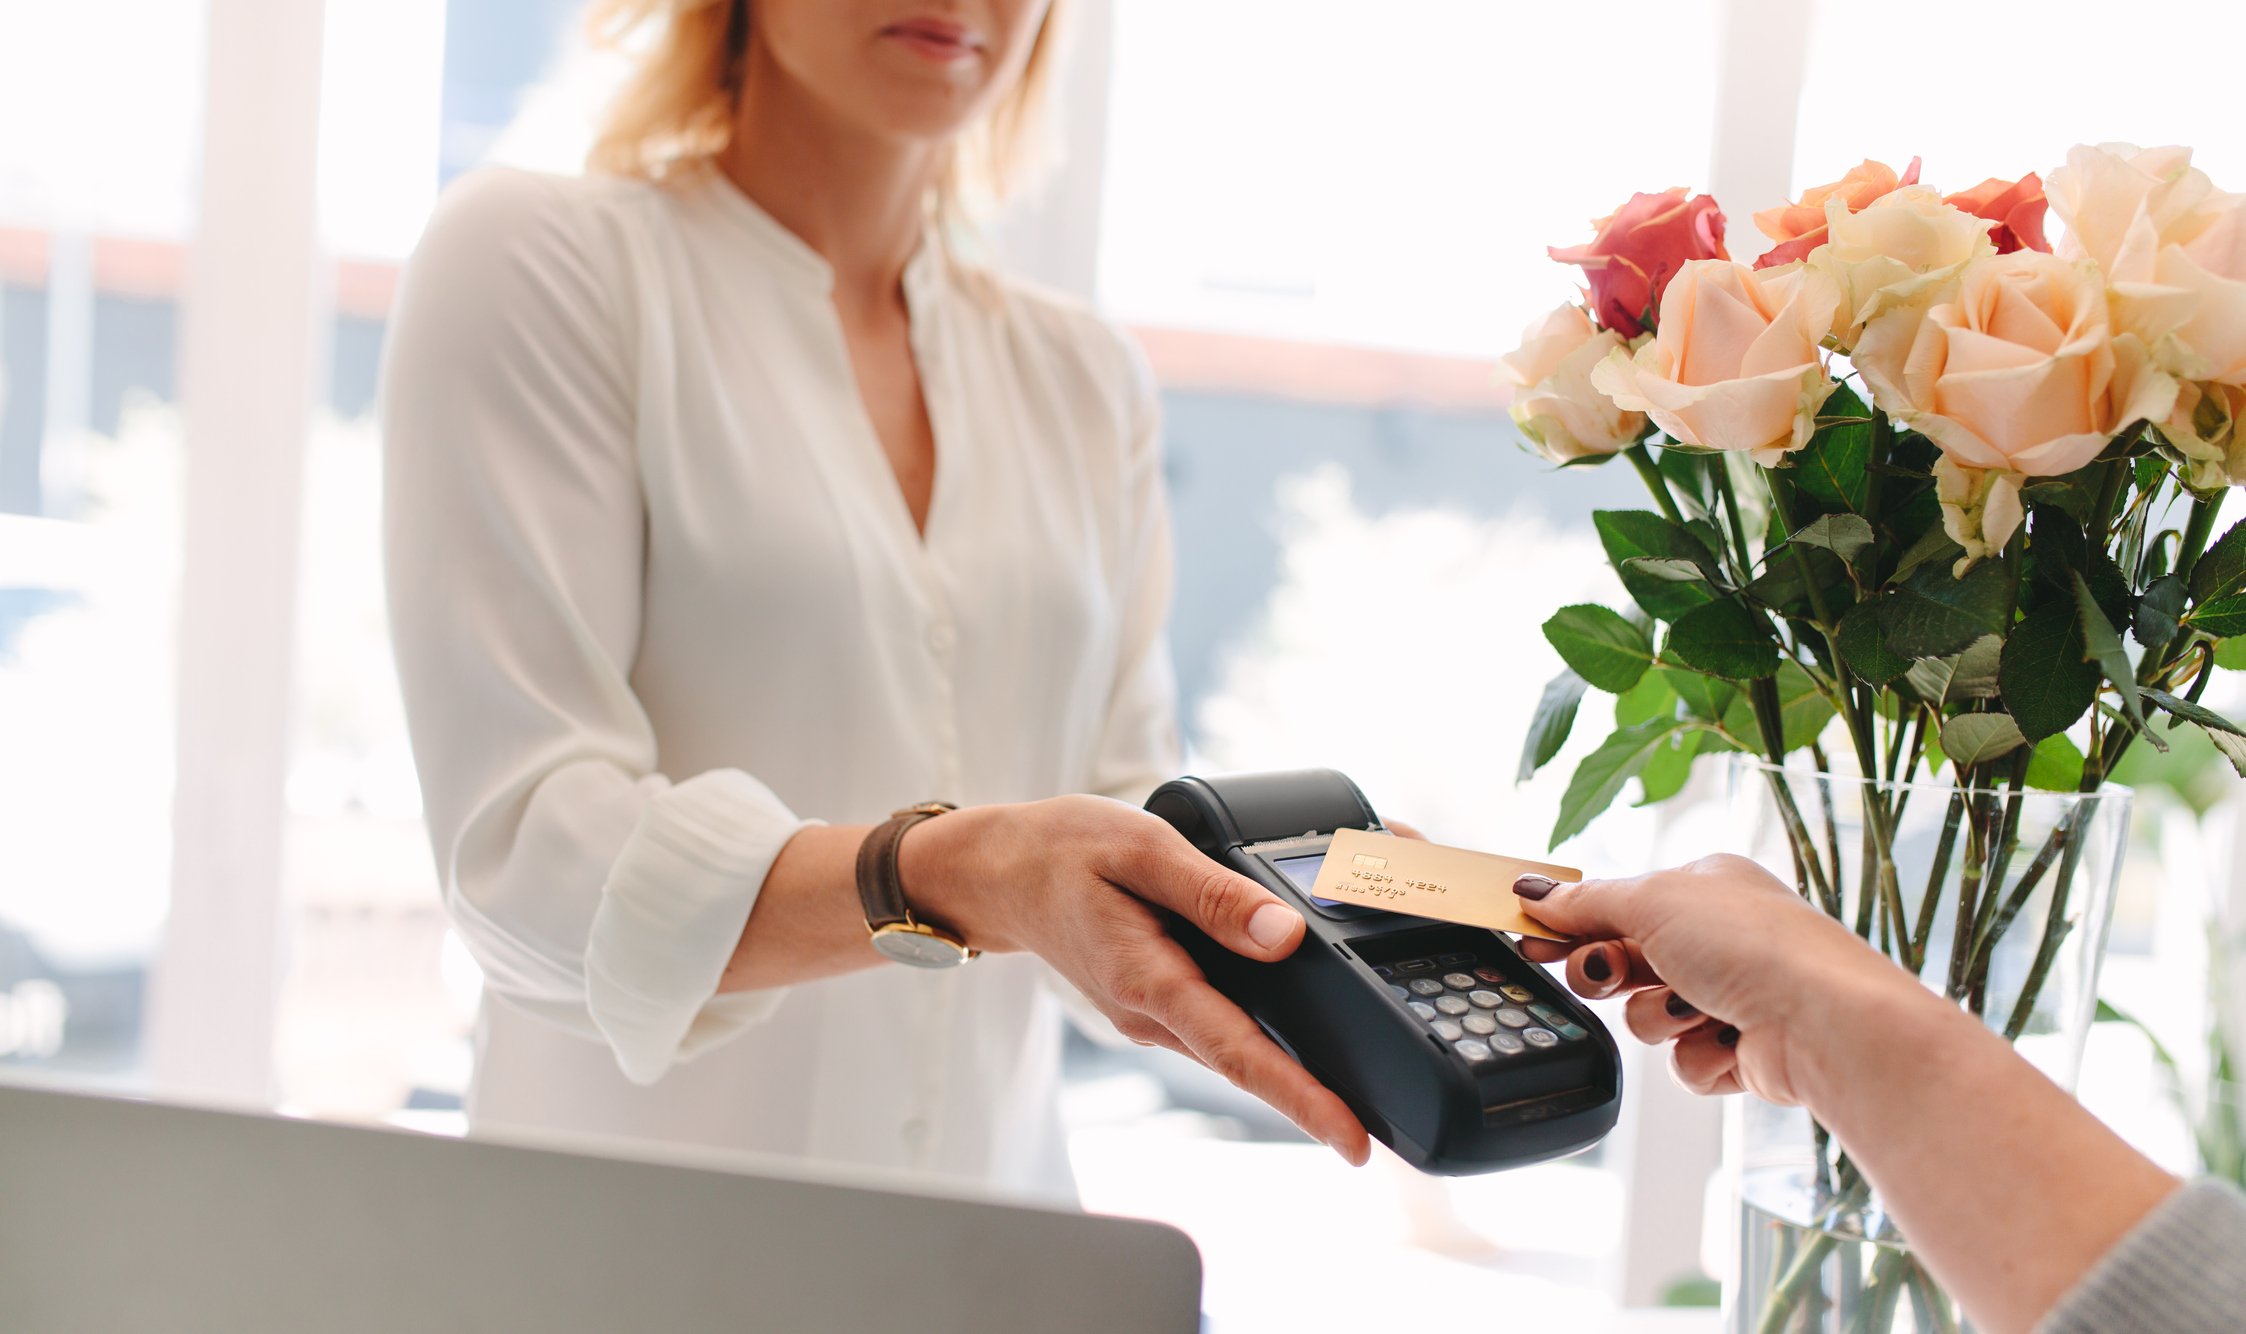 Someone paying on a credit card reader with flowers in the background.